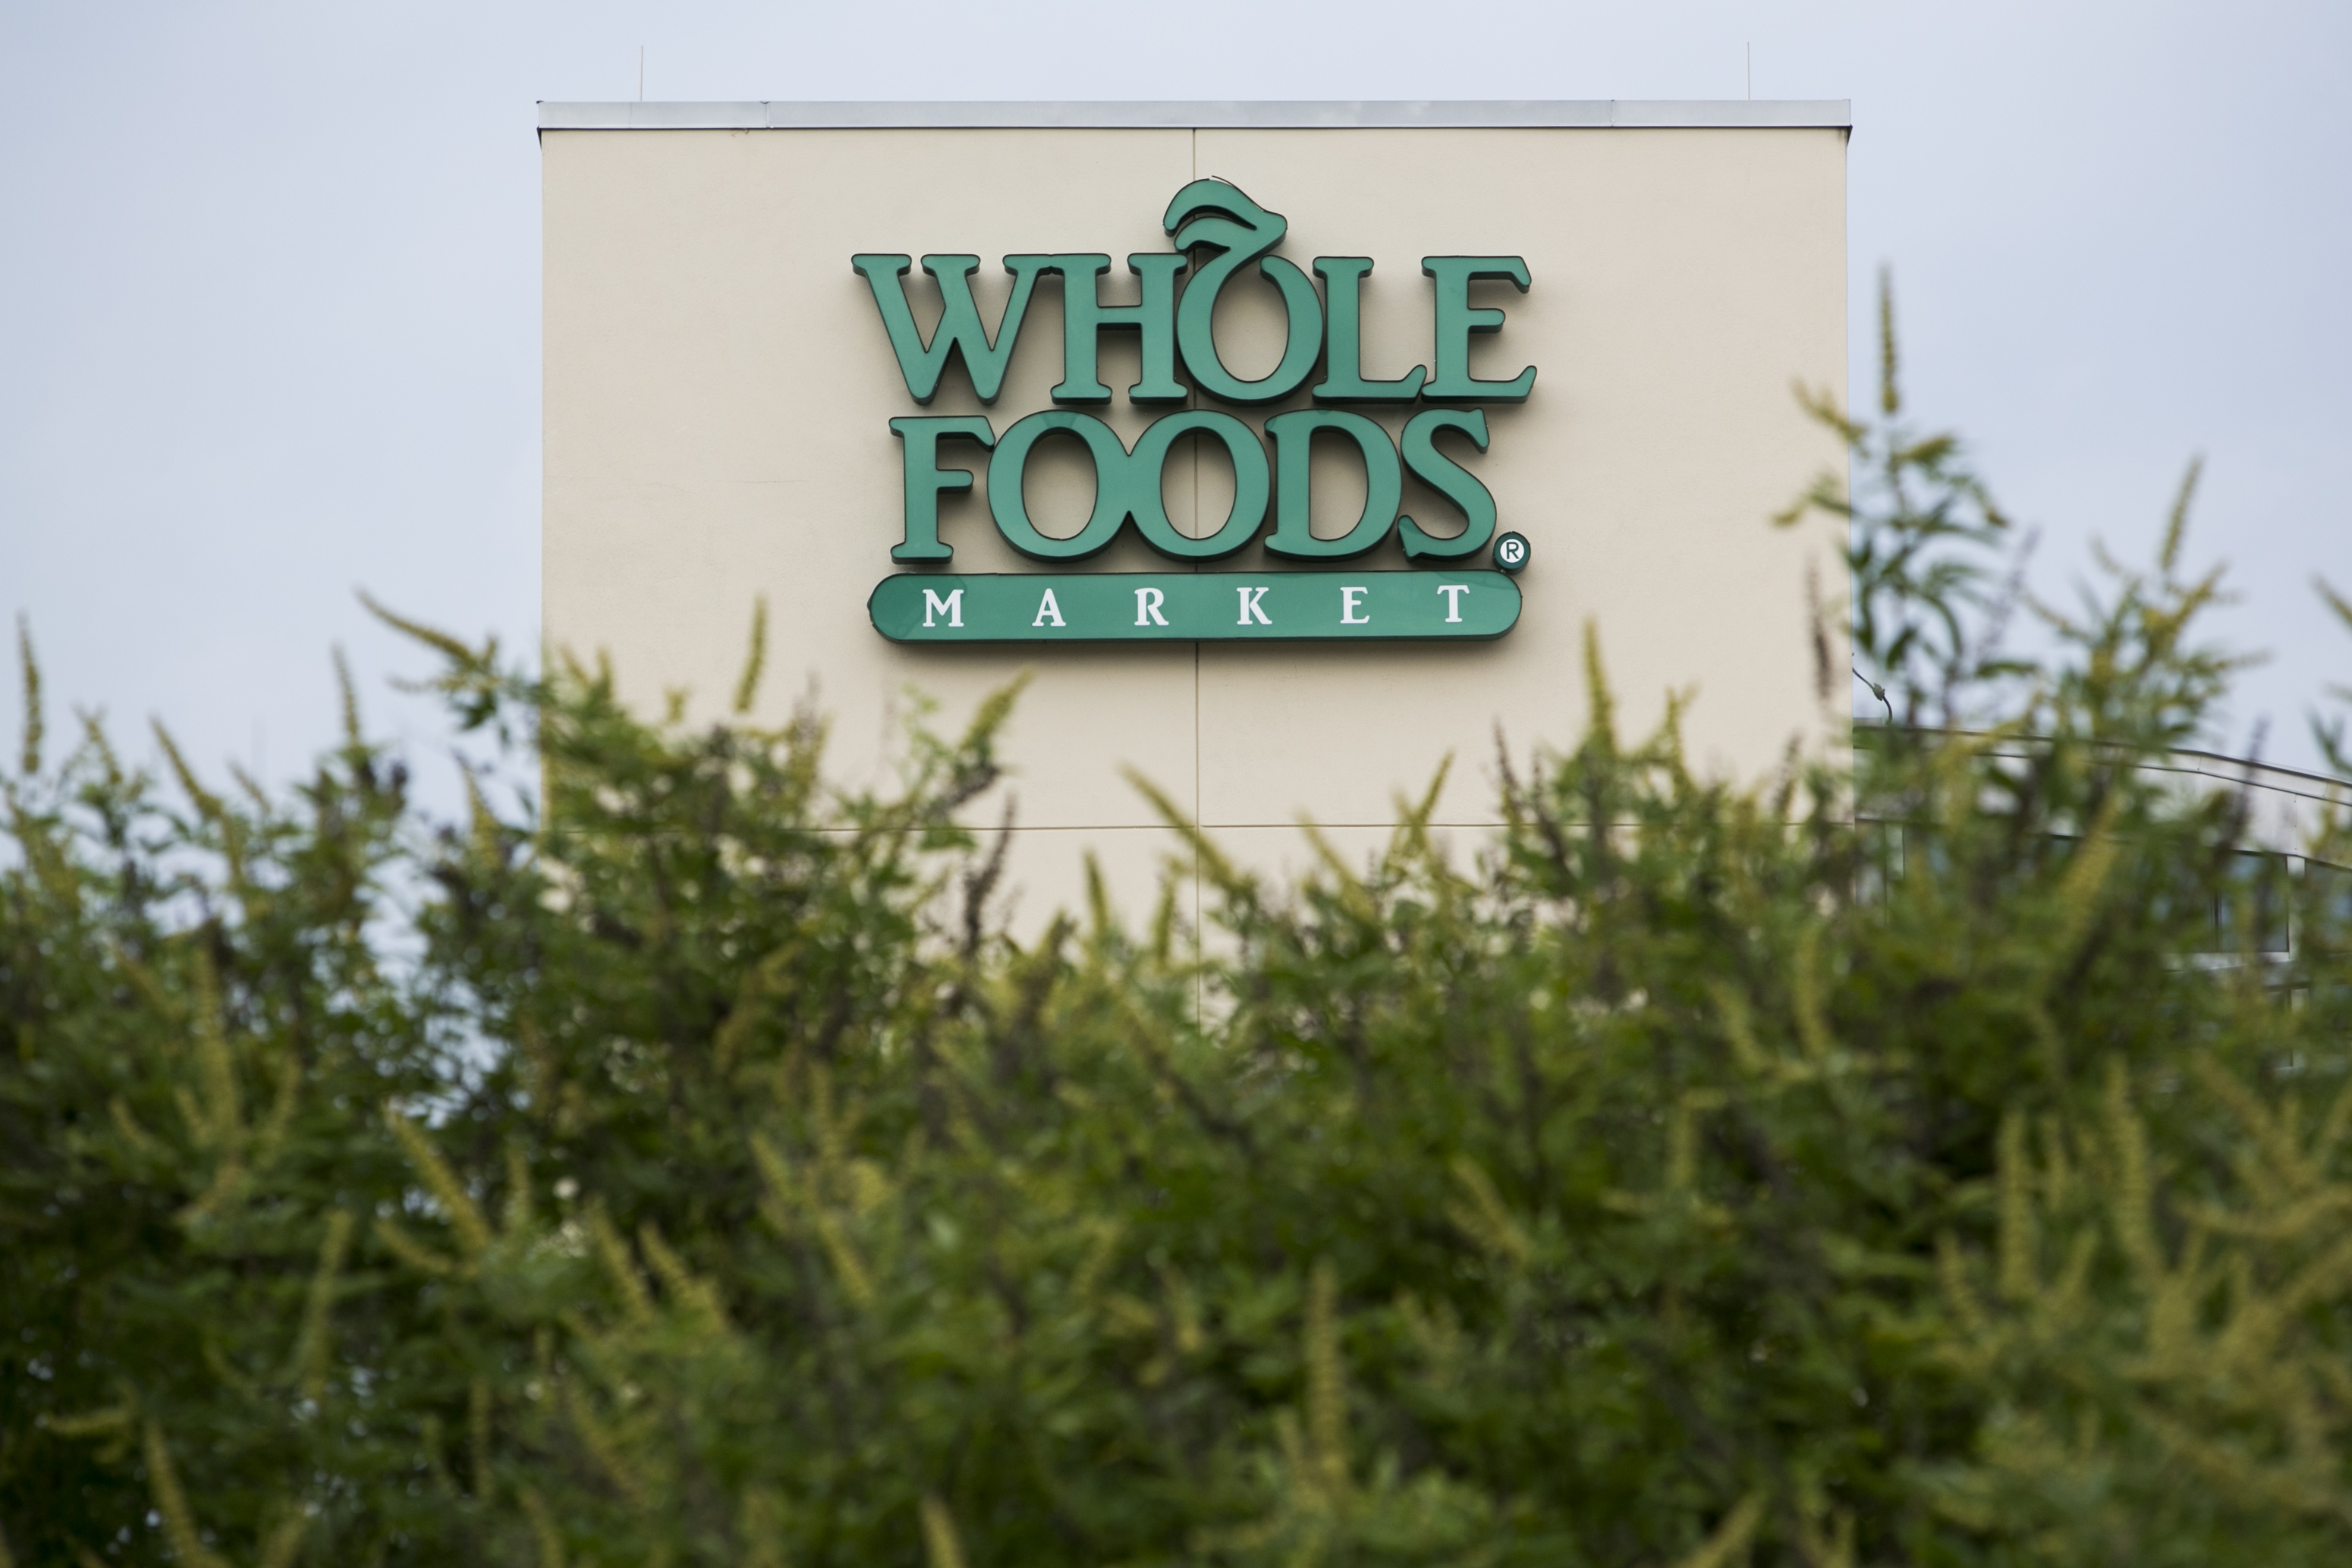 The headquarters and a store location of Whole Foods Market Inc., in Austin, Texas on Sept. 11, 2015.